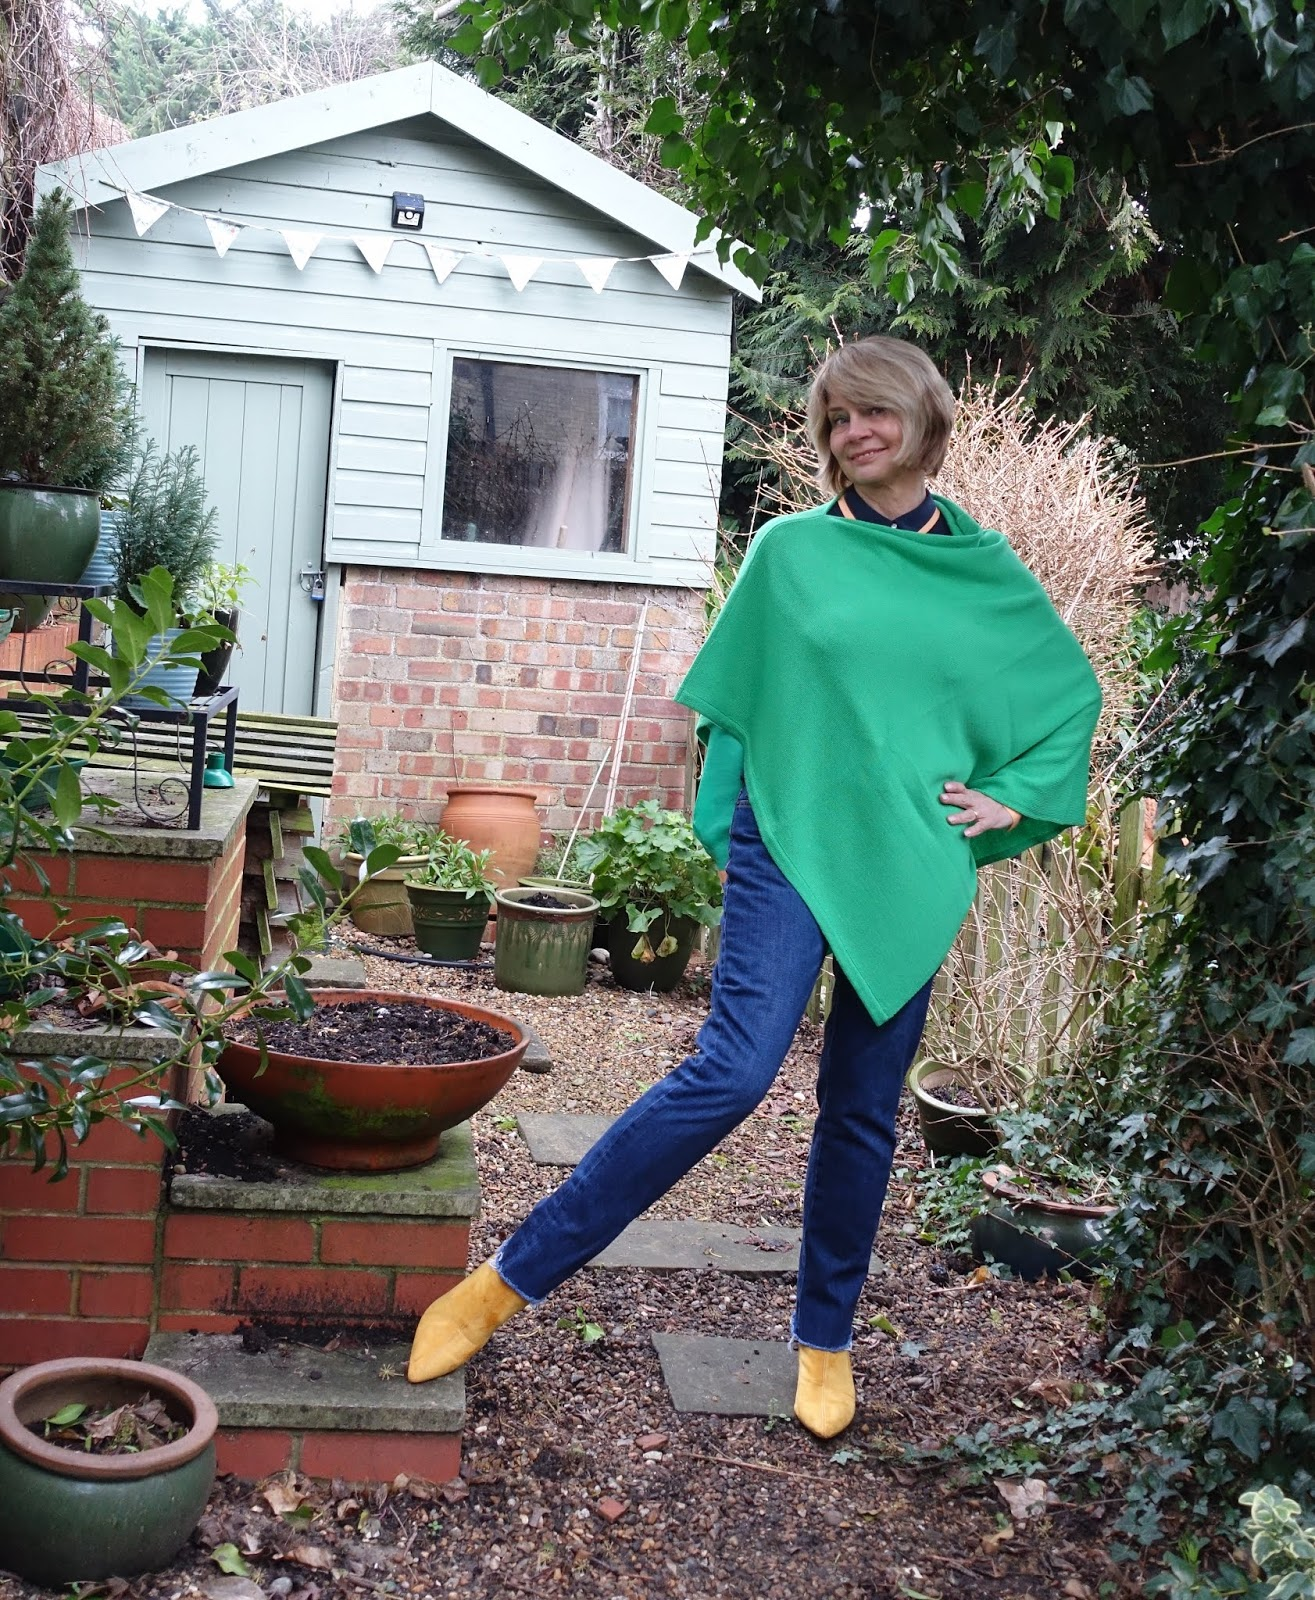 Over 50s blogger Gail Hanlon from Is This Mutton in green City poncho from Kettlewell and Hush jeans